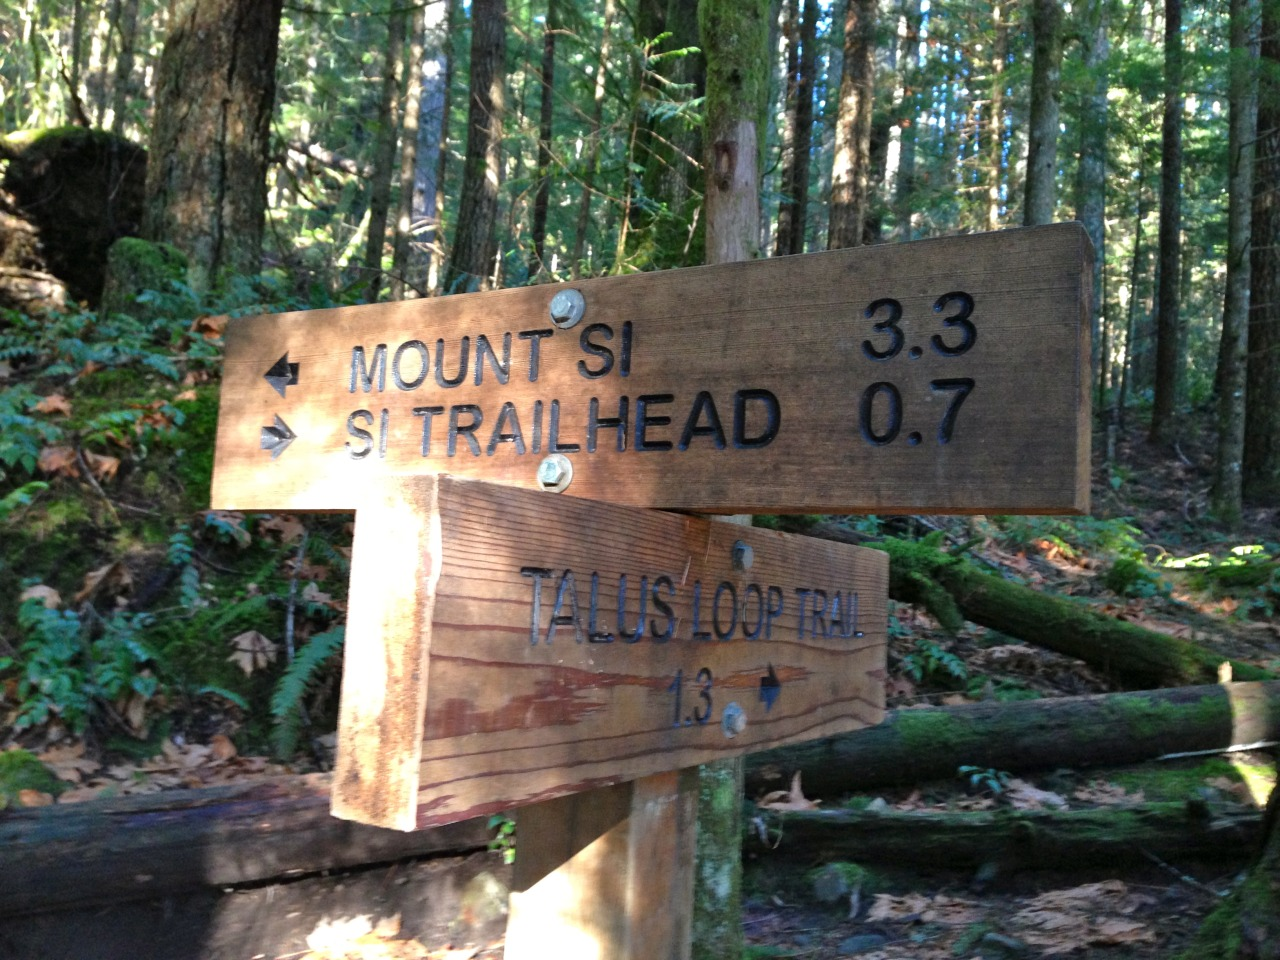 Hiked the Mount Si Trail yesterday! It was basically a 4 mile hike up a mountainside. Very steep trail, but super fun and challenging.